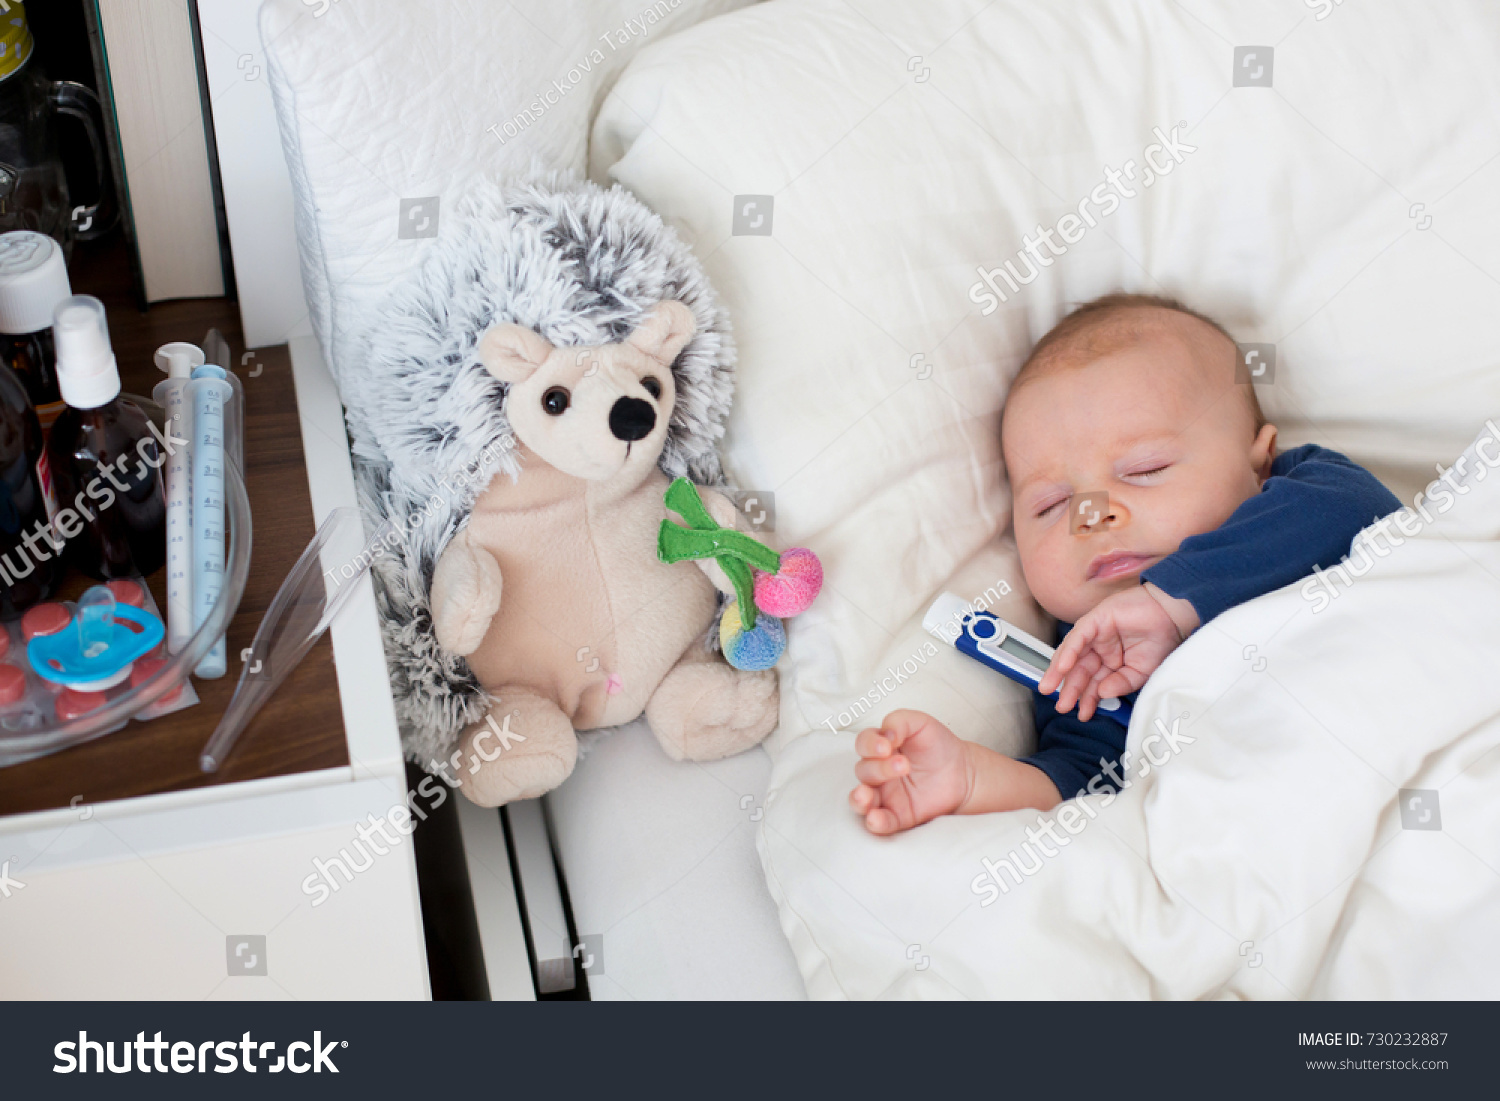 Newborn Infant With Fever Cute Newborn Baby Boy Lying Bed Stock Photo Edit Now 730232887